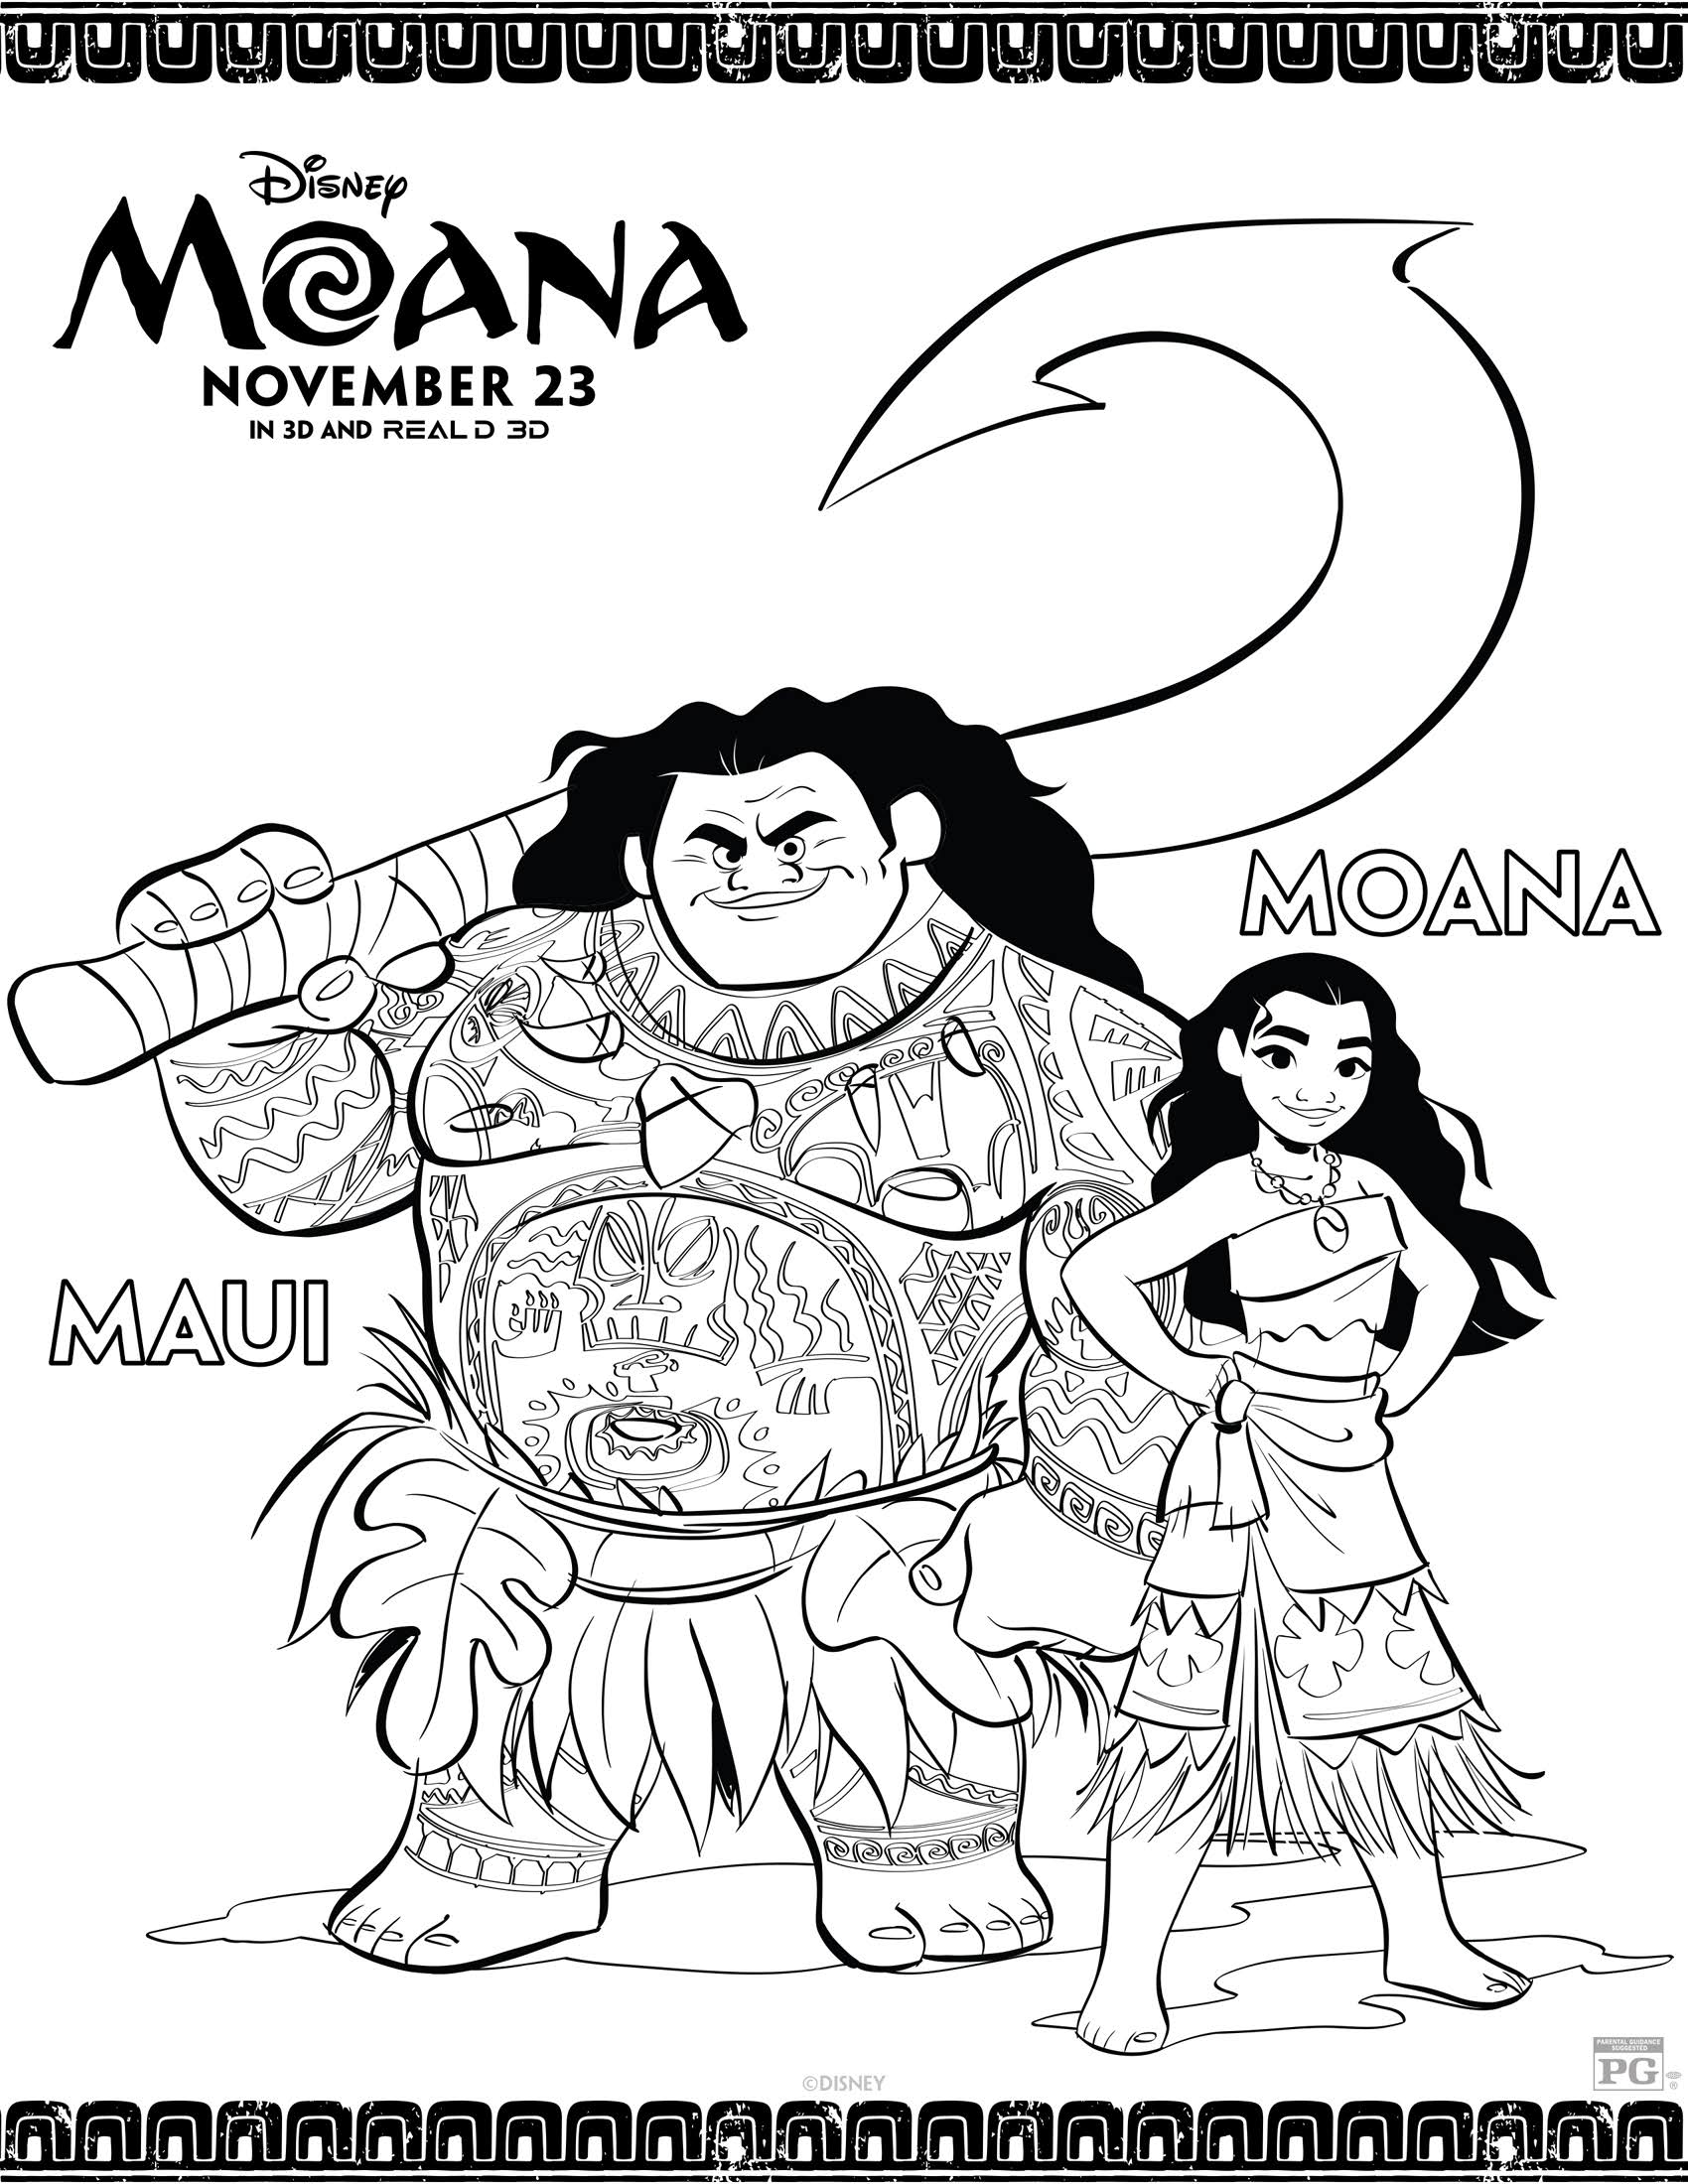 moana coloring pages printable free disney39s moana coloring pages and activity sheets printables printable coloring pages moana free